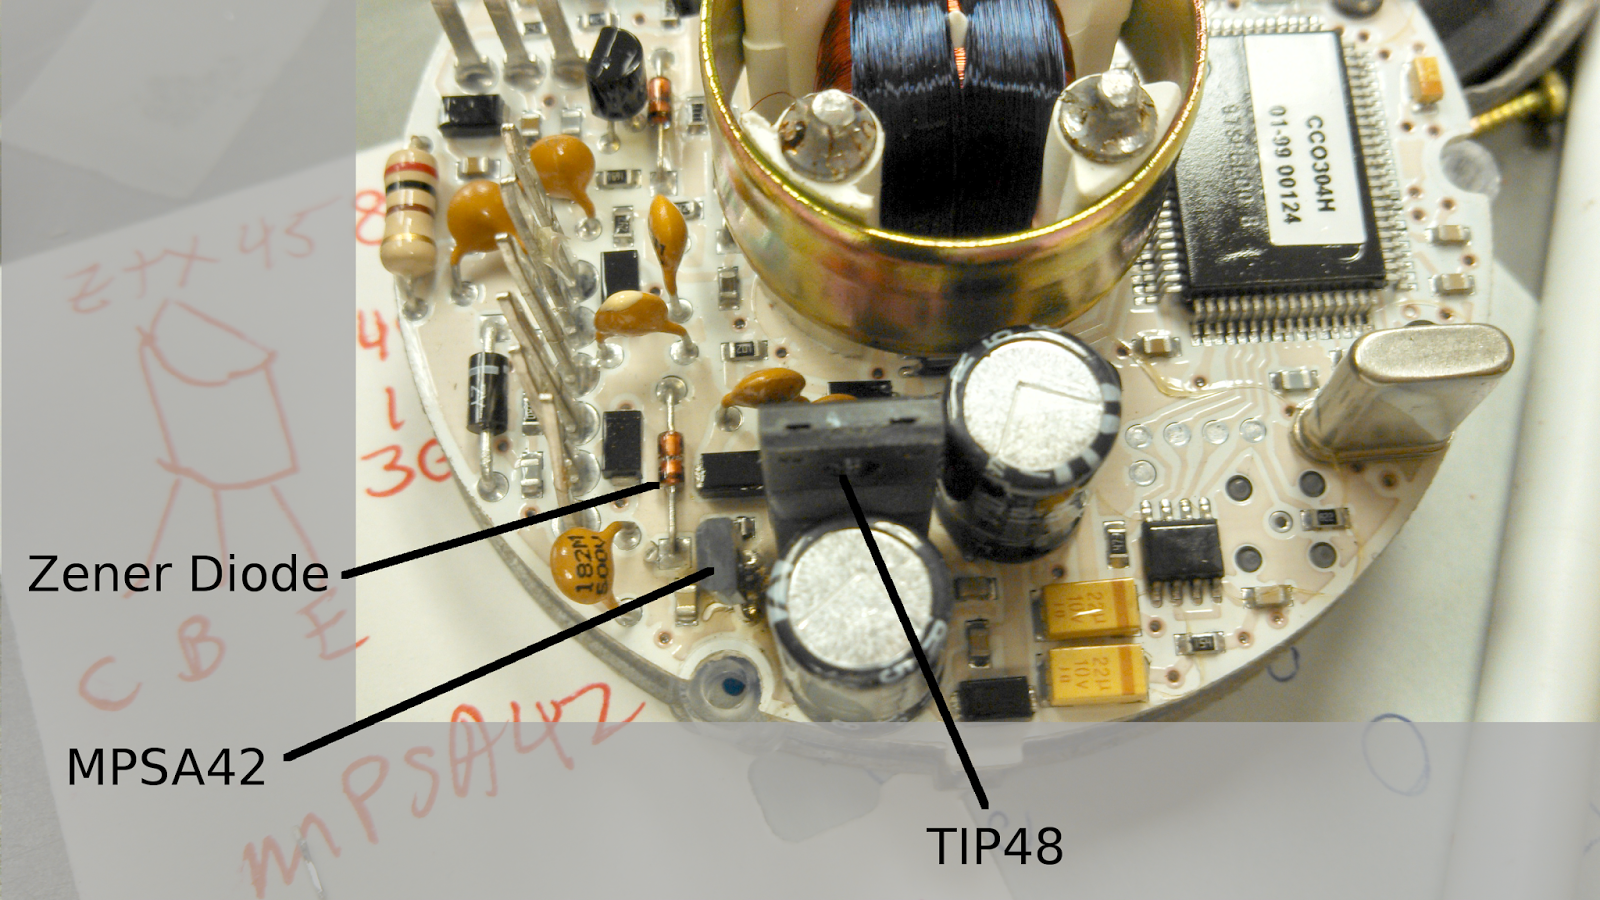 small resolution of figure 4 location of the likely bad part s when i took this picture i had already replaced the tip48 and the mpsa42 but not the zener diode